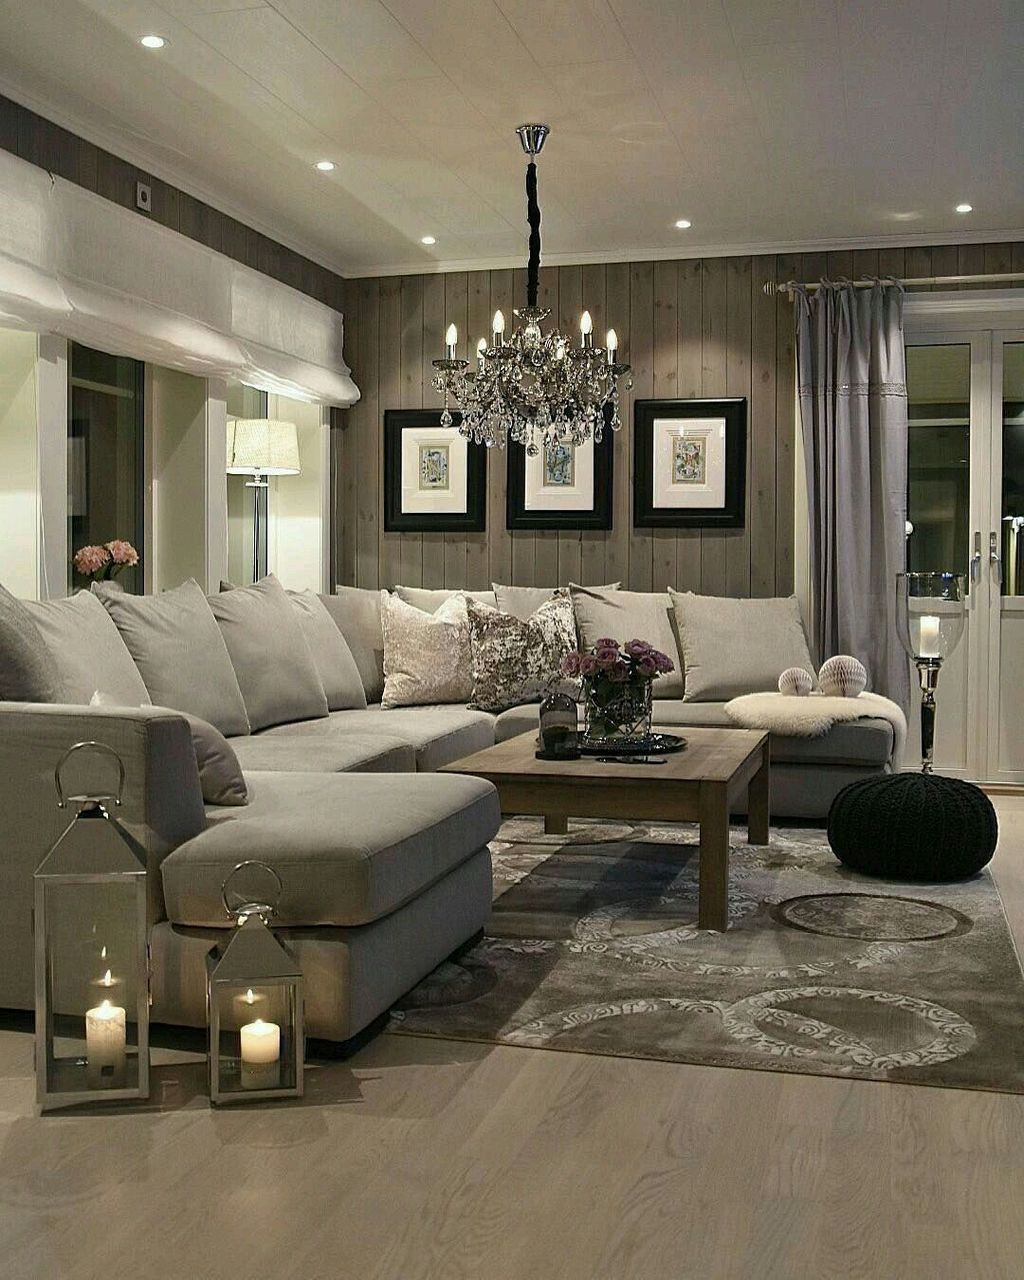 50 The Best Living Room Decorating Ideas Trends 2019 Pimphomee